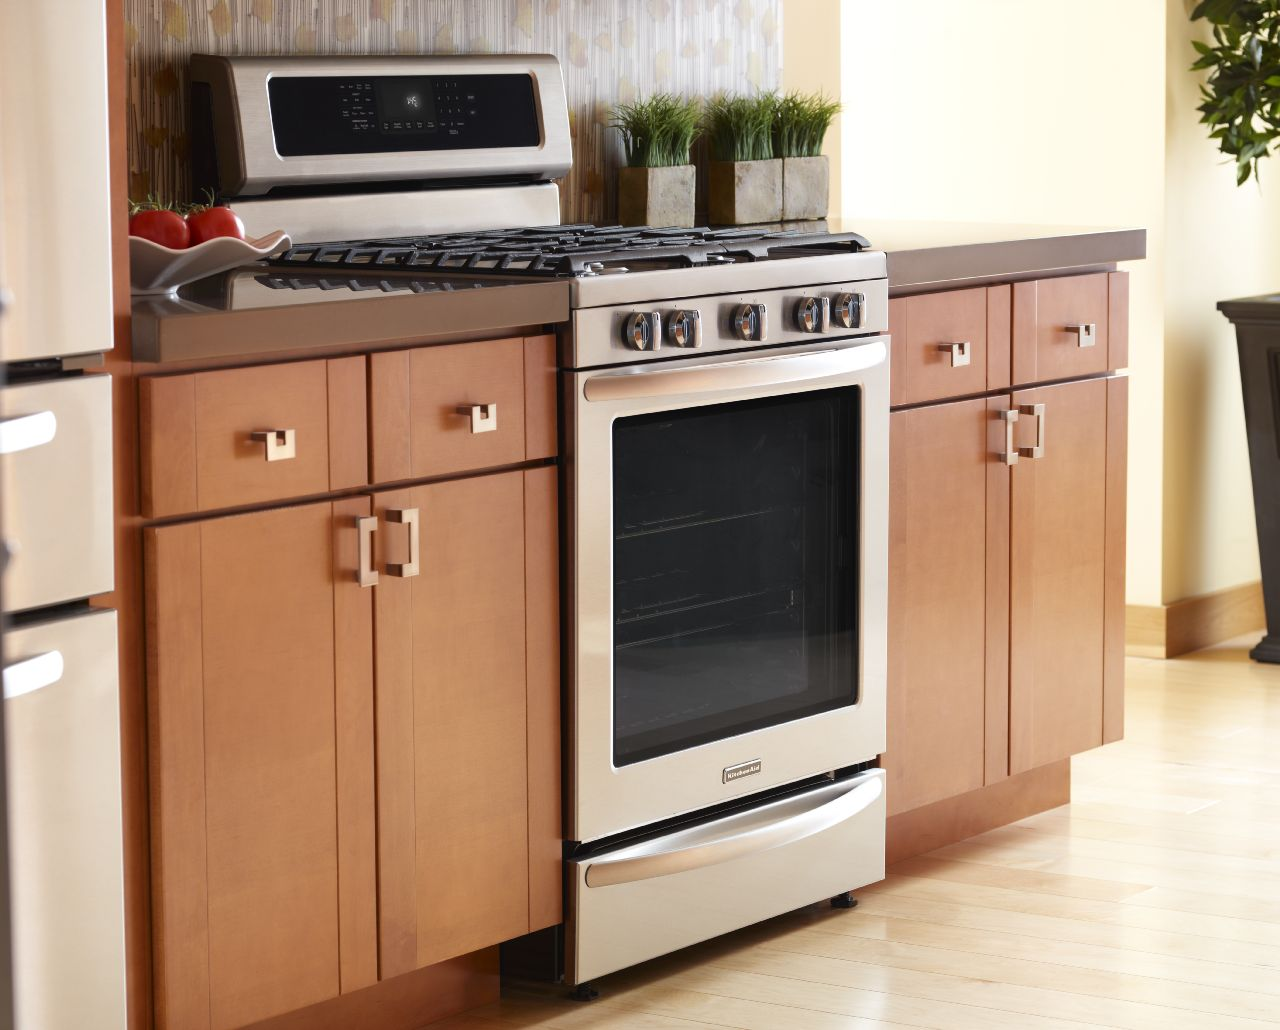 The Difference Between KitchenAid Slide-In and Freestanding ...